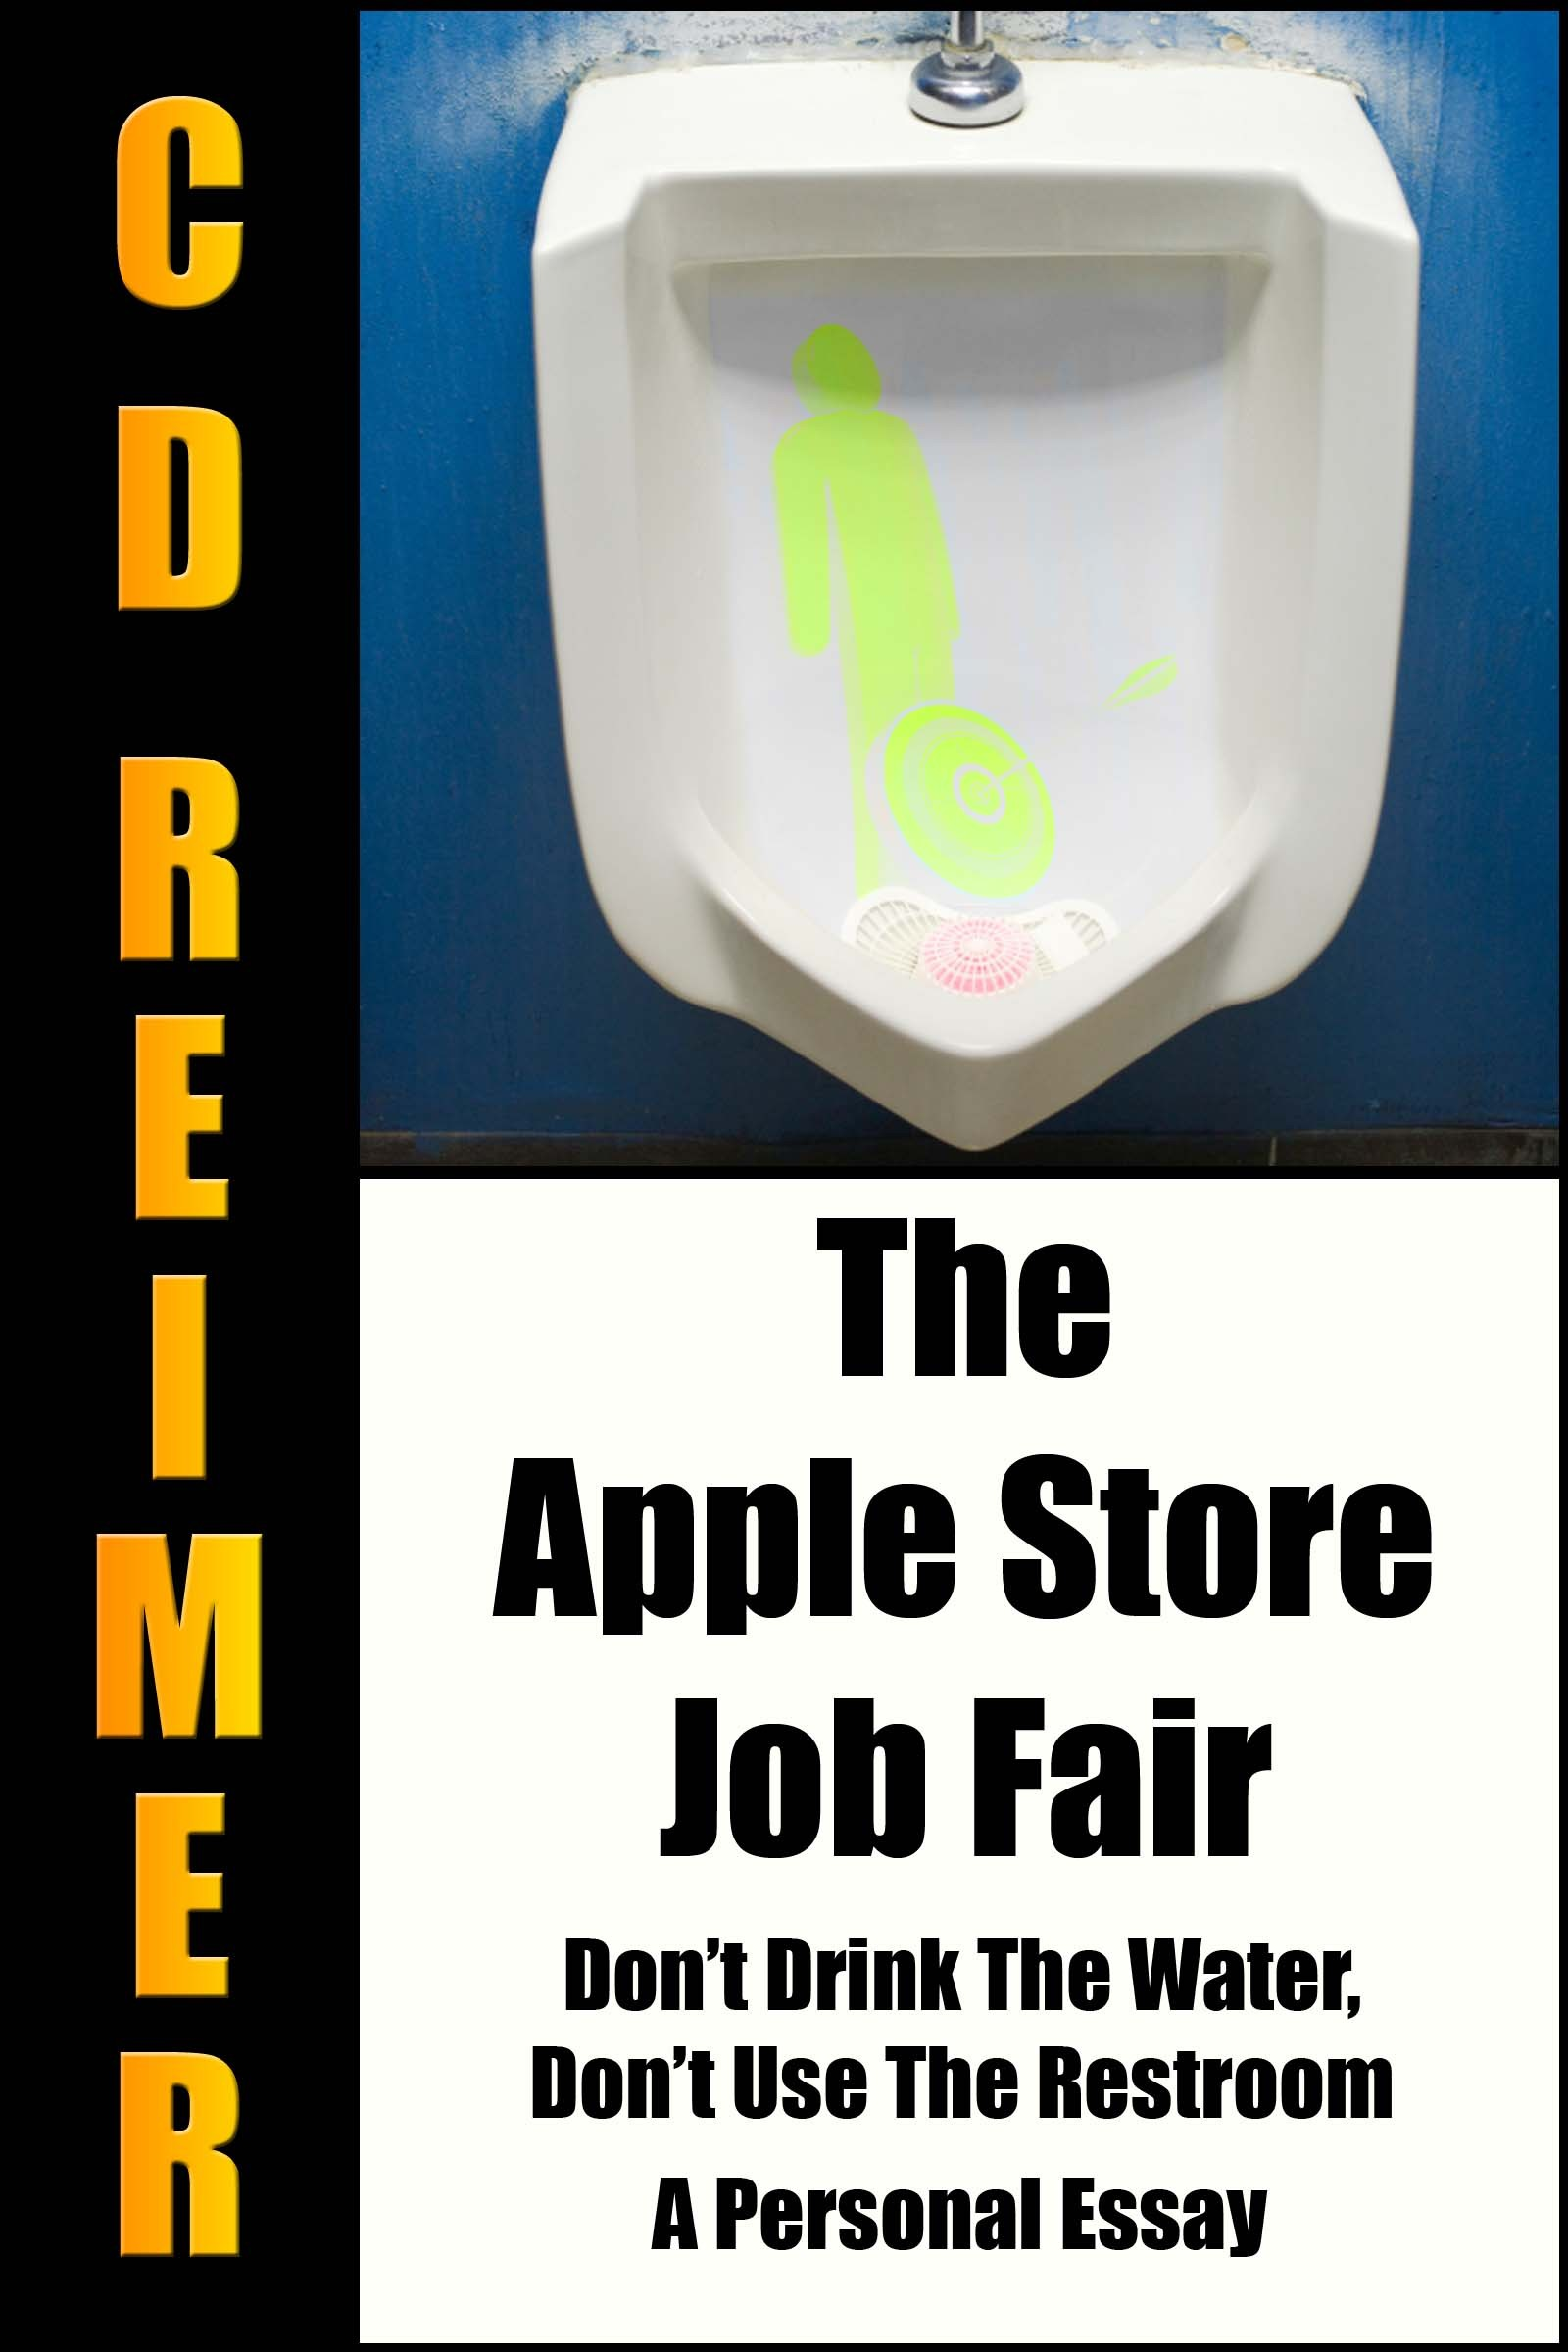 The Apple Store Job Fair: Don't Drink The Water, Don't Use The Restroom